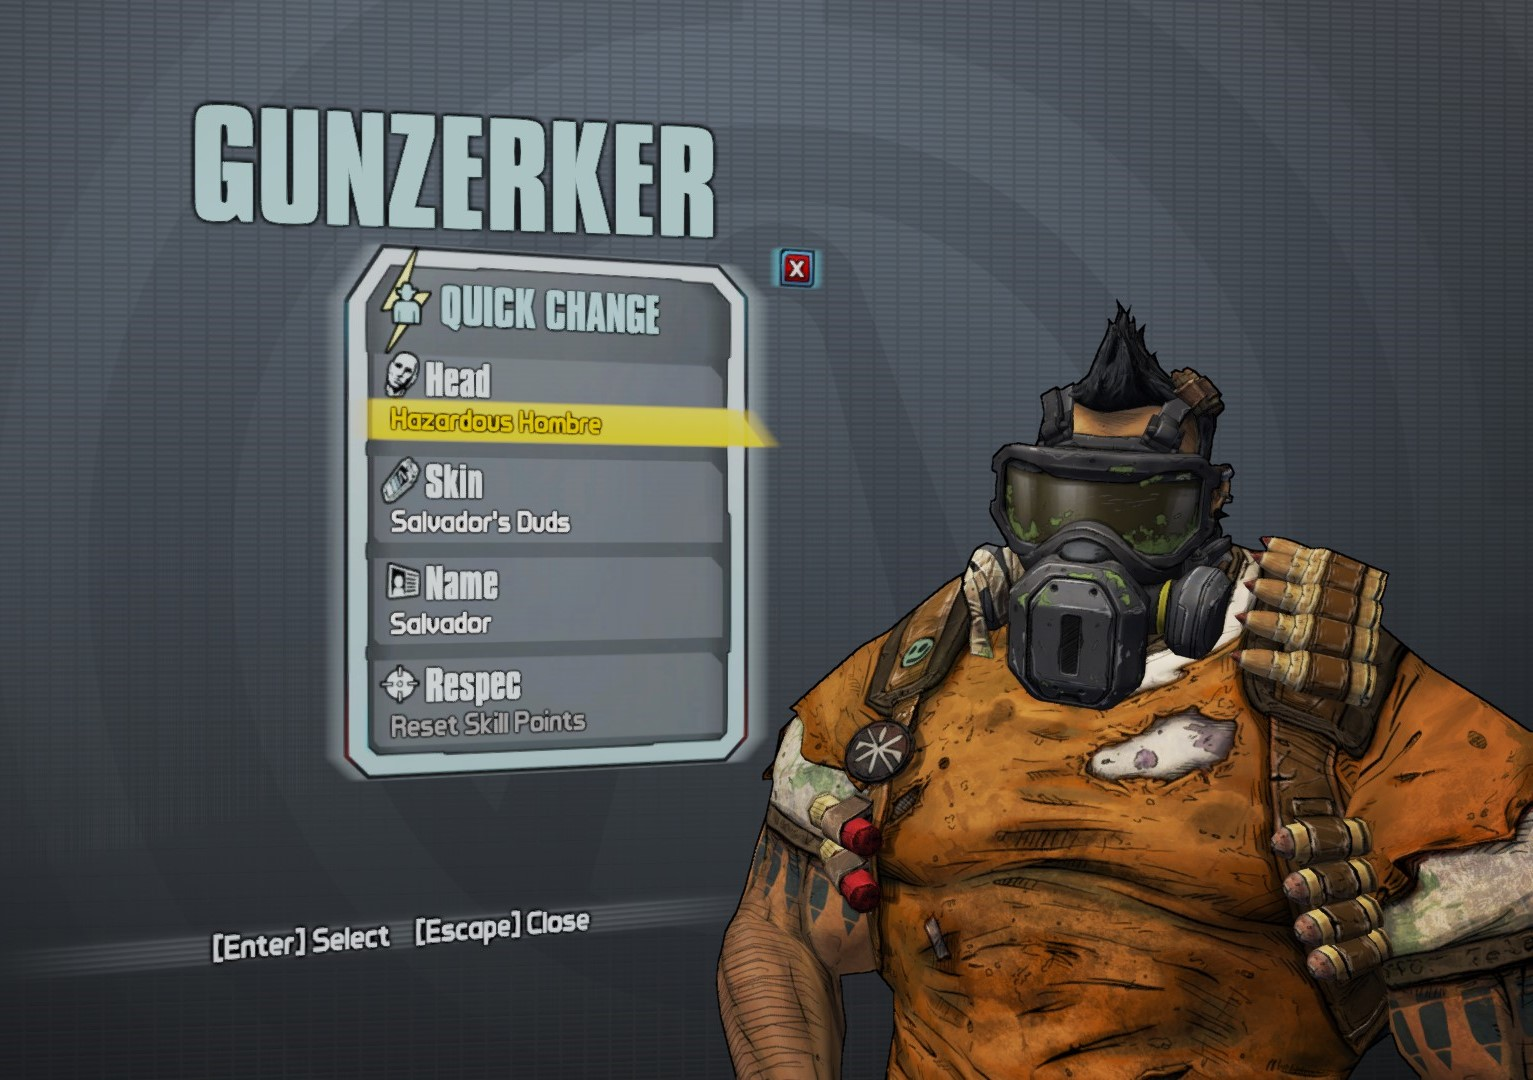 New Gunzerker head customization from Haderax the Invincible rewards